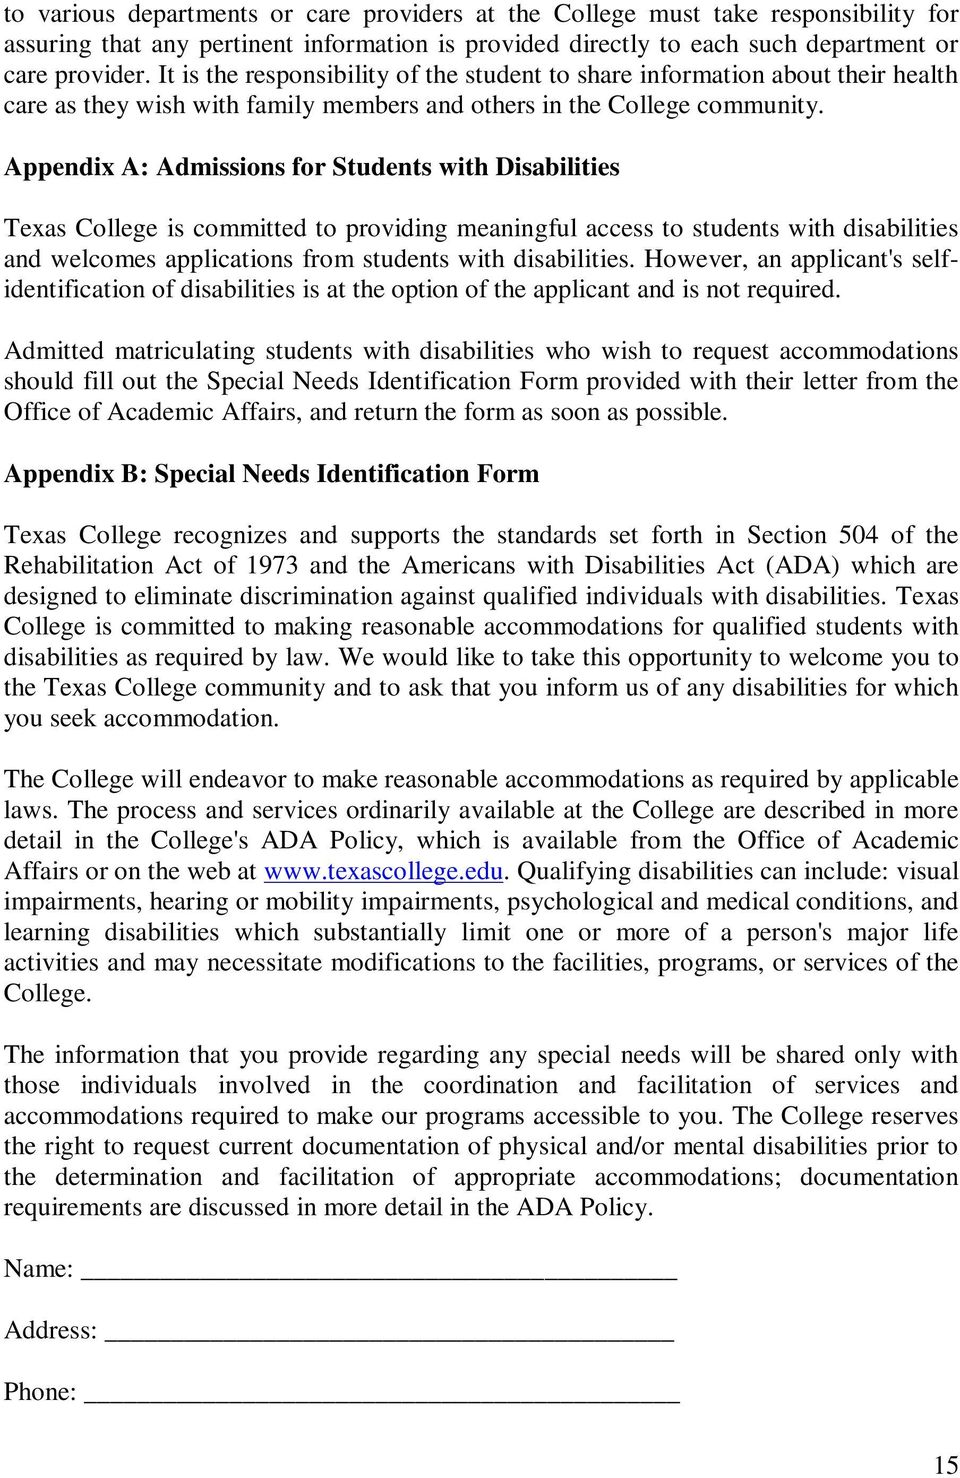 Appendix A: Admissions for Students with Disabilities Texas College is committed to providing meaningful access to students with disabilities and welcomes applications from students with disabilities.